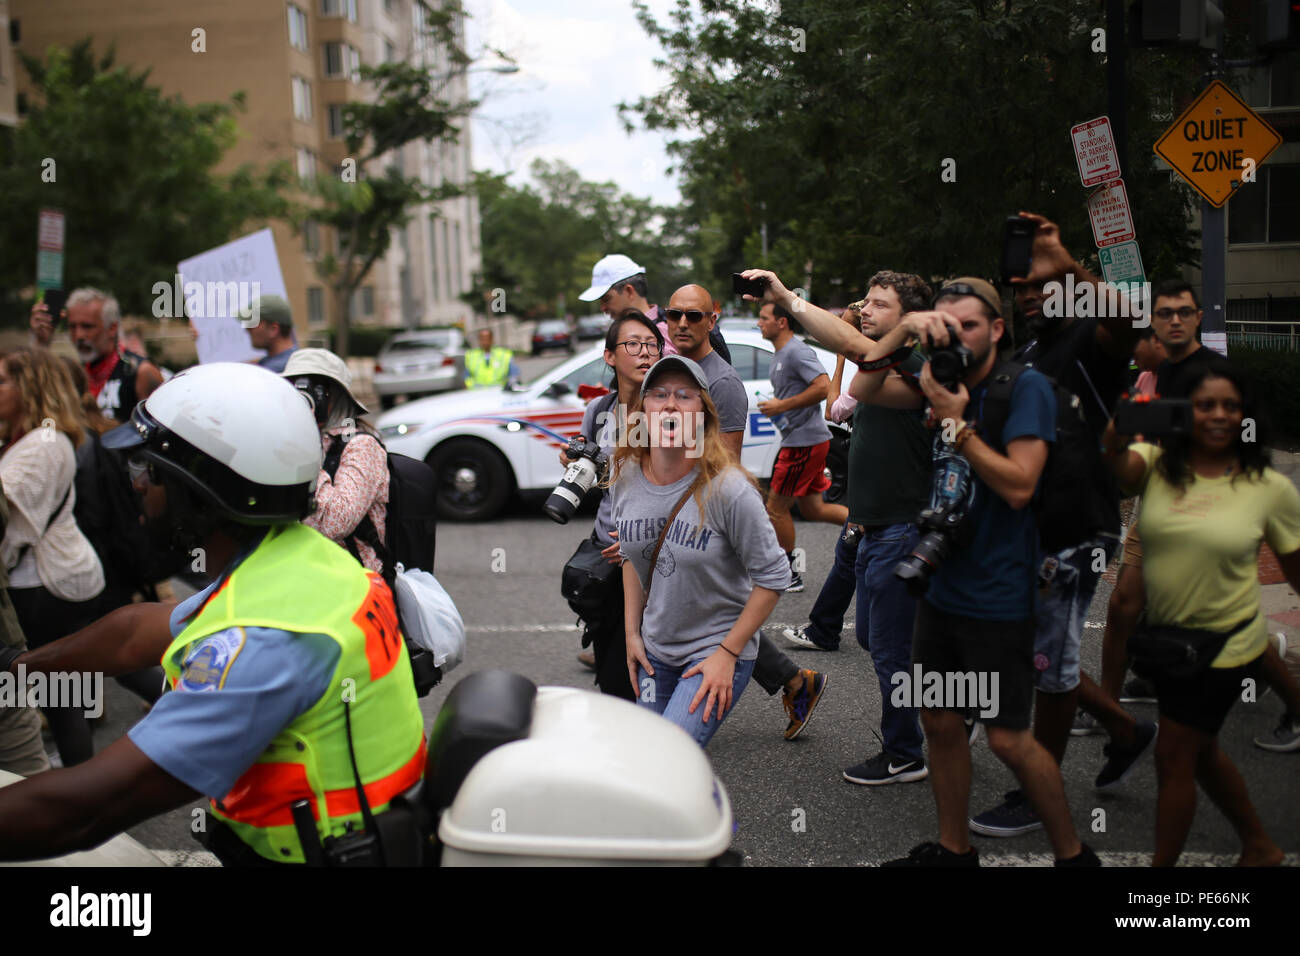 Washington, DC, USA. 12 Aug 2018. Counterprotestors at the Unite the Right  protest march along with the police escort voicing their anger at the  protestors.